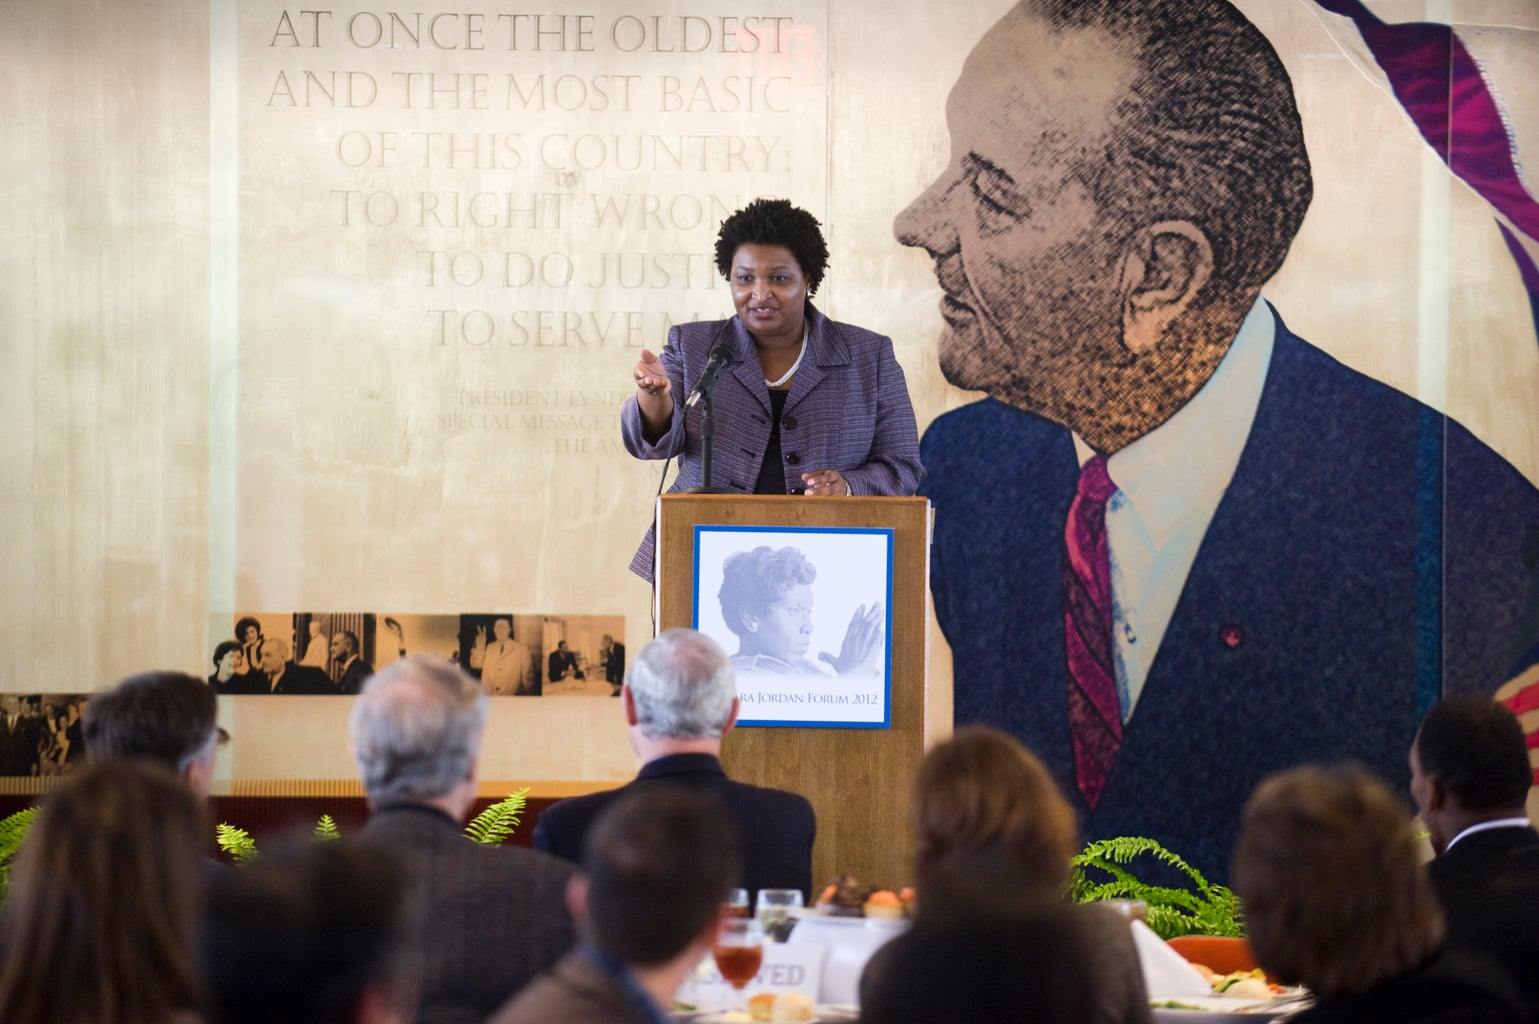 Stacey Abrams speaking at an event